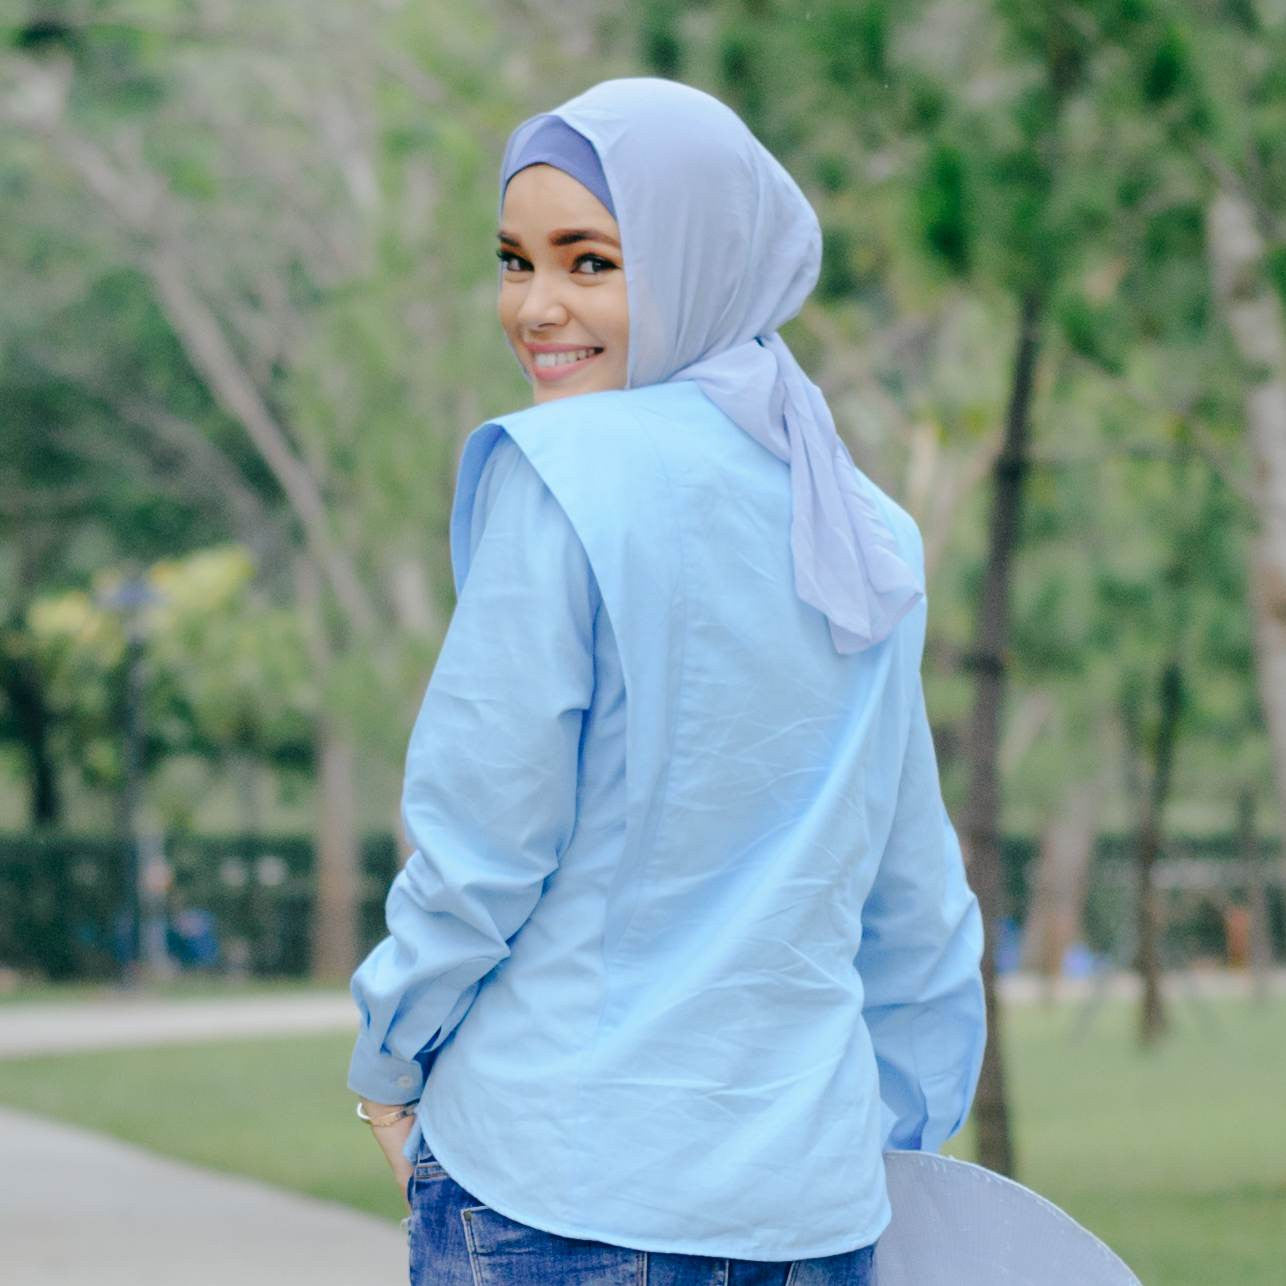 Blue Anisah blouse chic hijab modesty clothing available at Desa Life